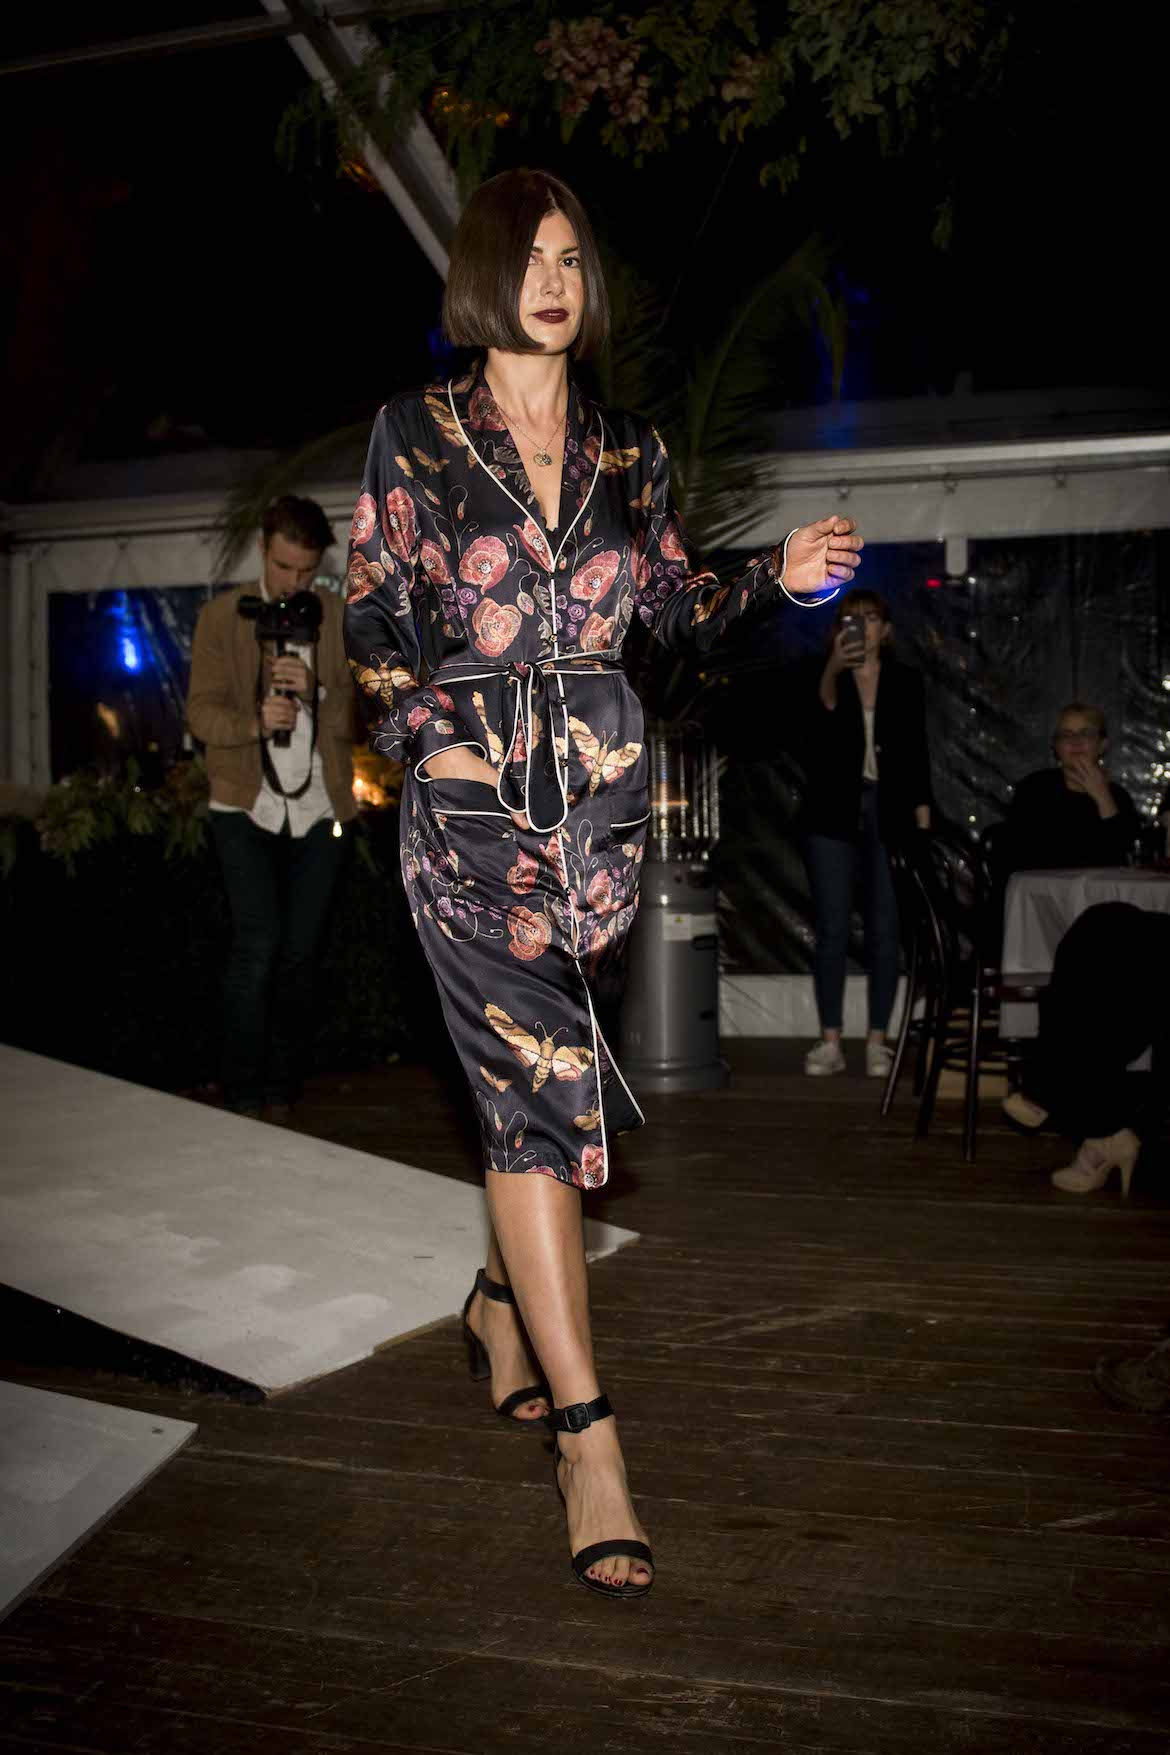 By Weave unveils latest collection at Central Coast Fashion Week. Photo: Lisa Haymes